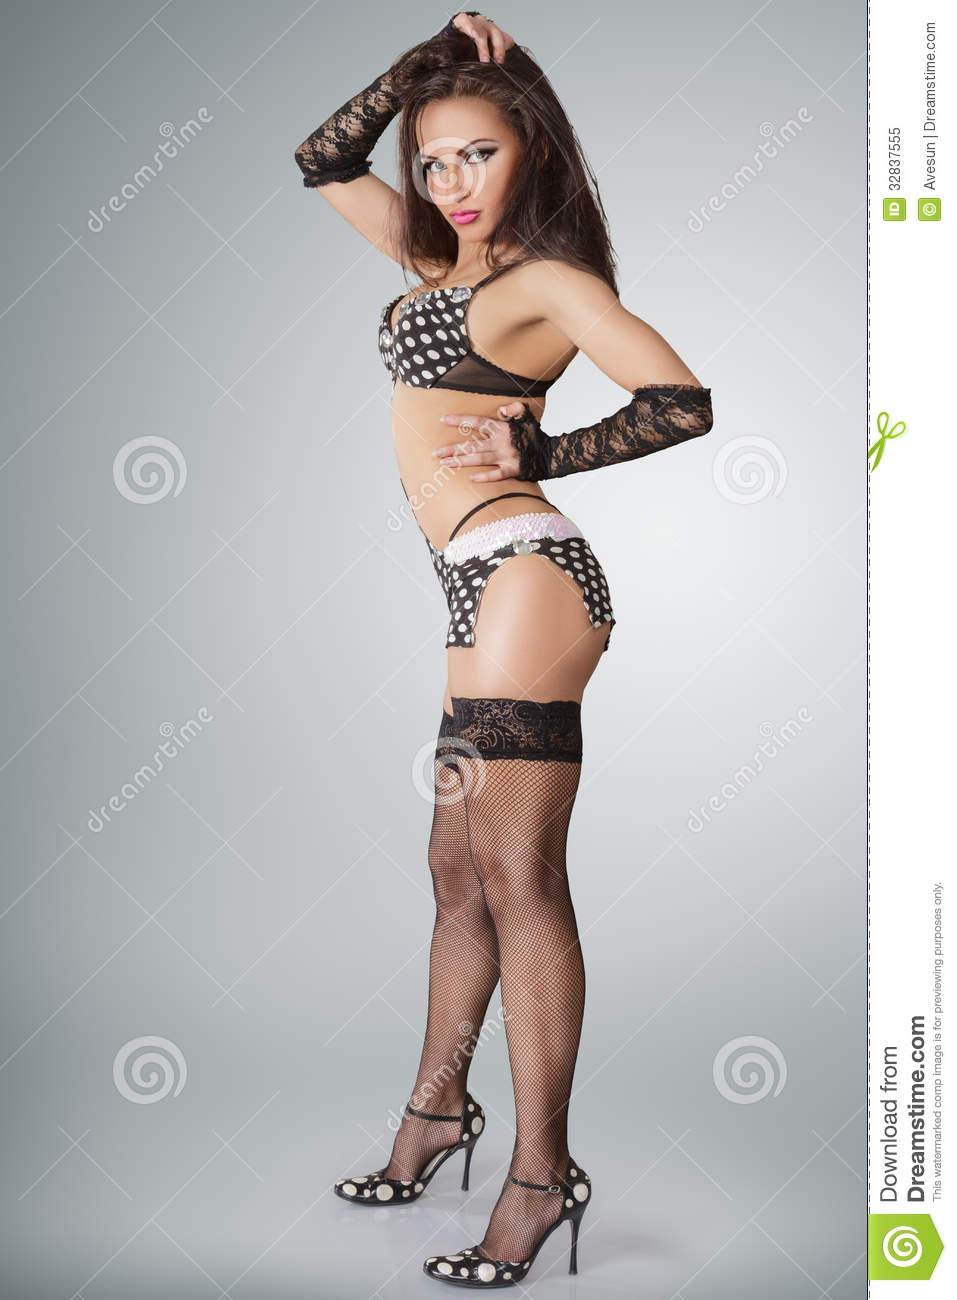 Go-go Dancer Royalty Free Stock Photo - Image: 32837555